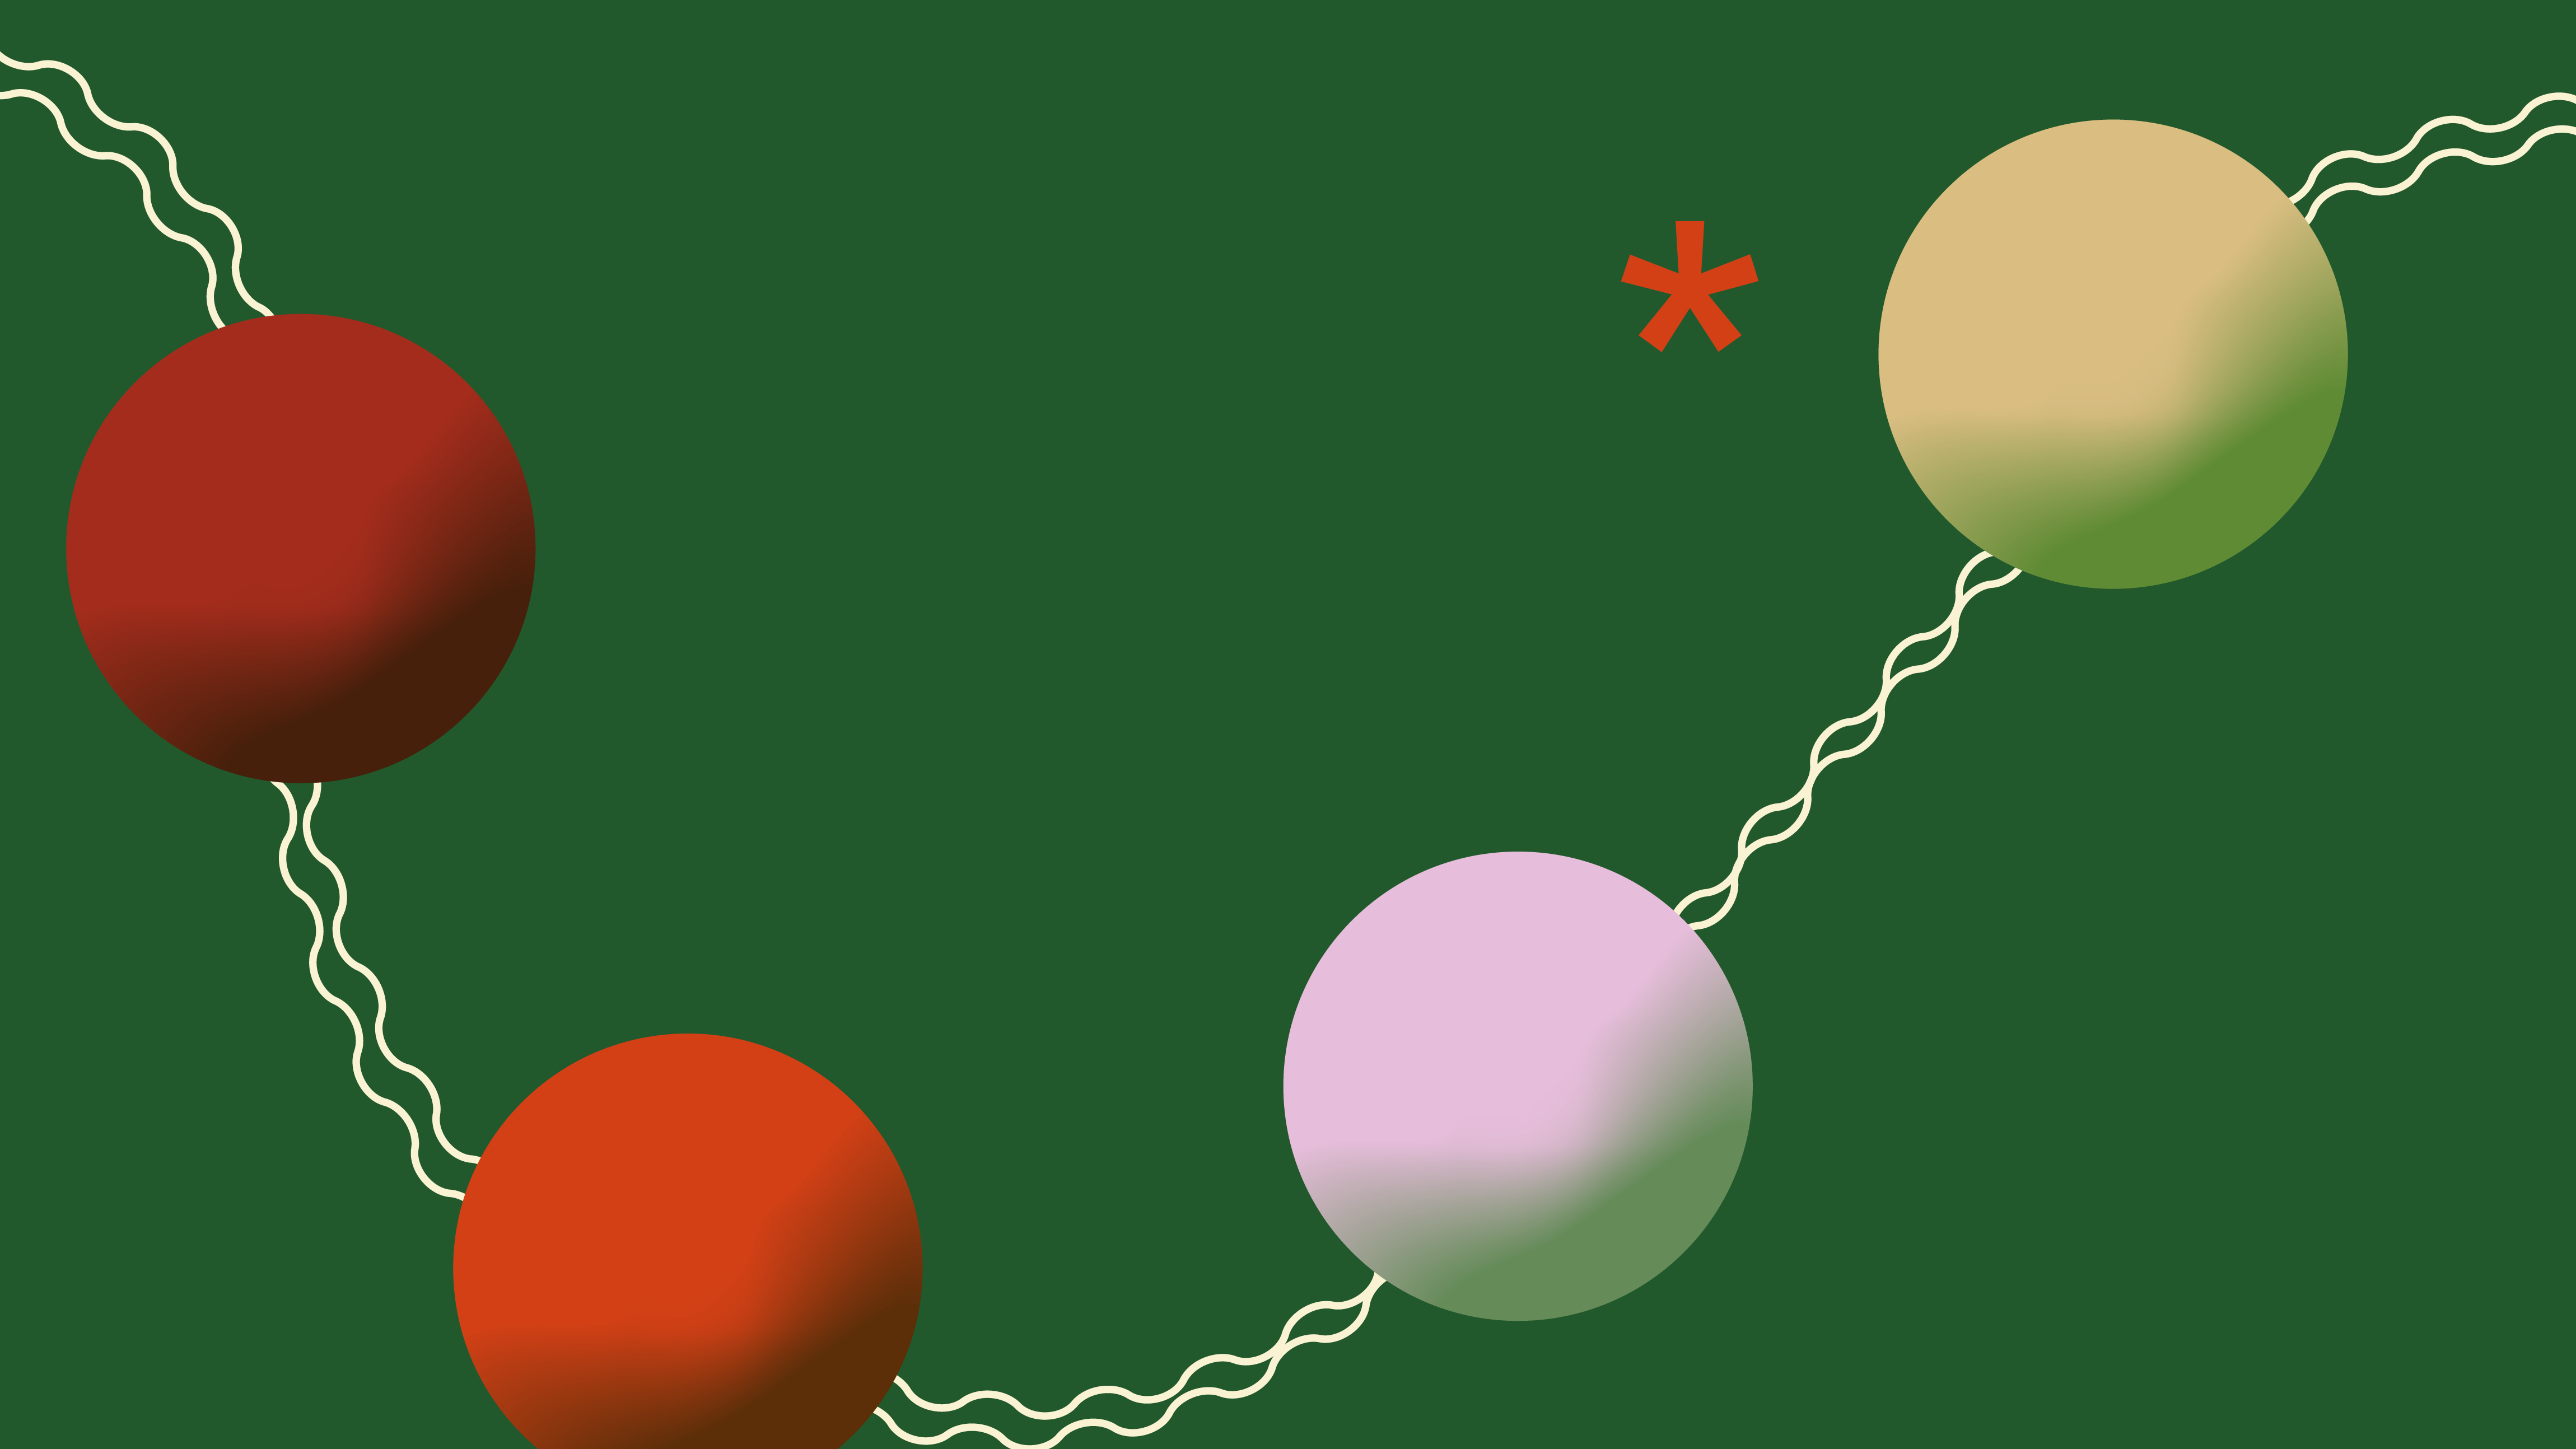 The image is an illustration depicting four different colored Christmas baubles, linked together by a white string, set against a dark green background. Illustration: Emilia Wärff